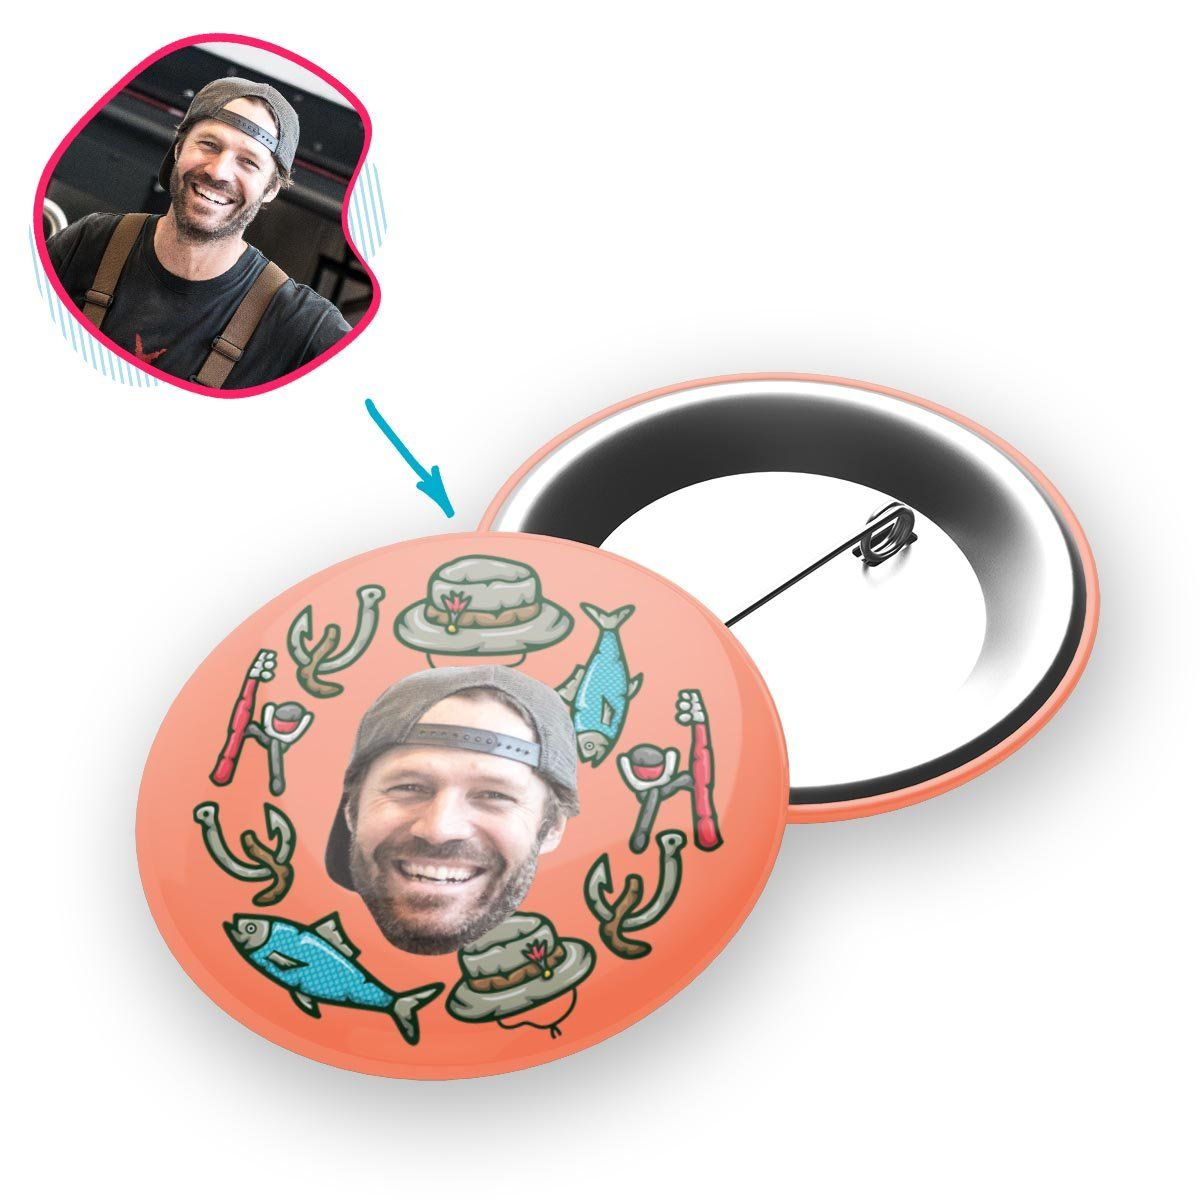 Salmon Fishing personalized pin with photo of face printed on it